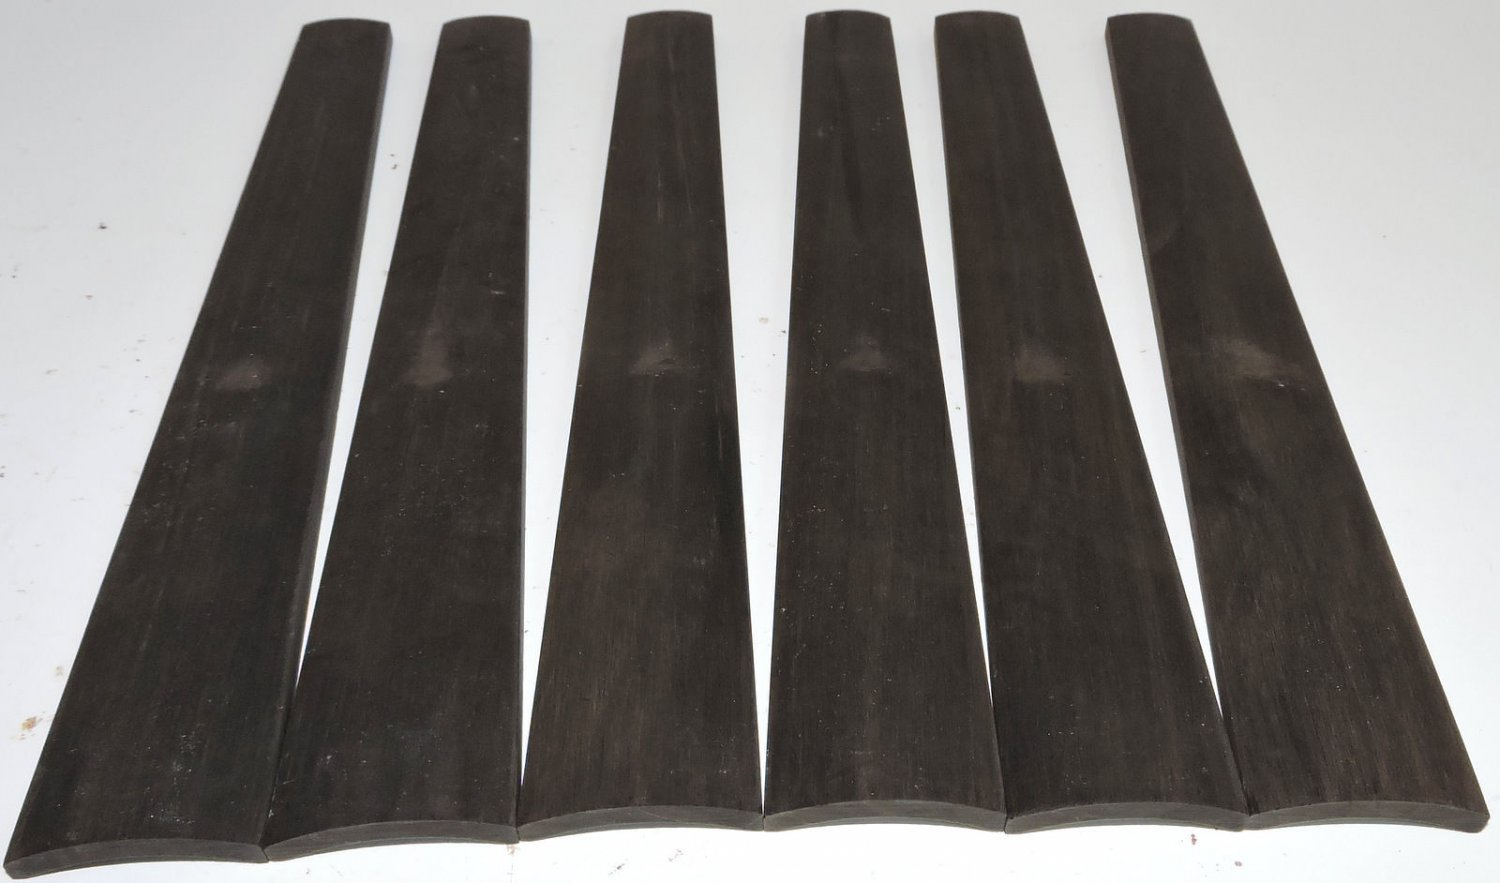 6 Gabon Ebony 4/4 Violin Fingerboards High Graded Violin Viola Musical Timber